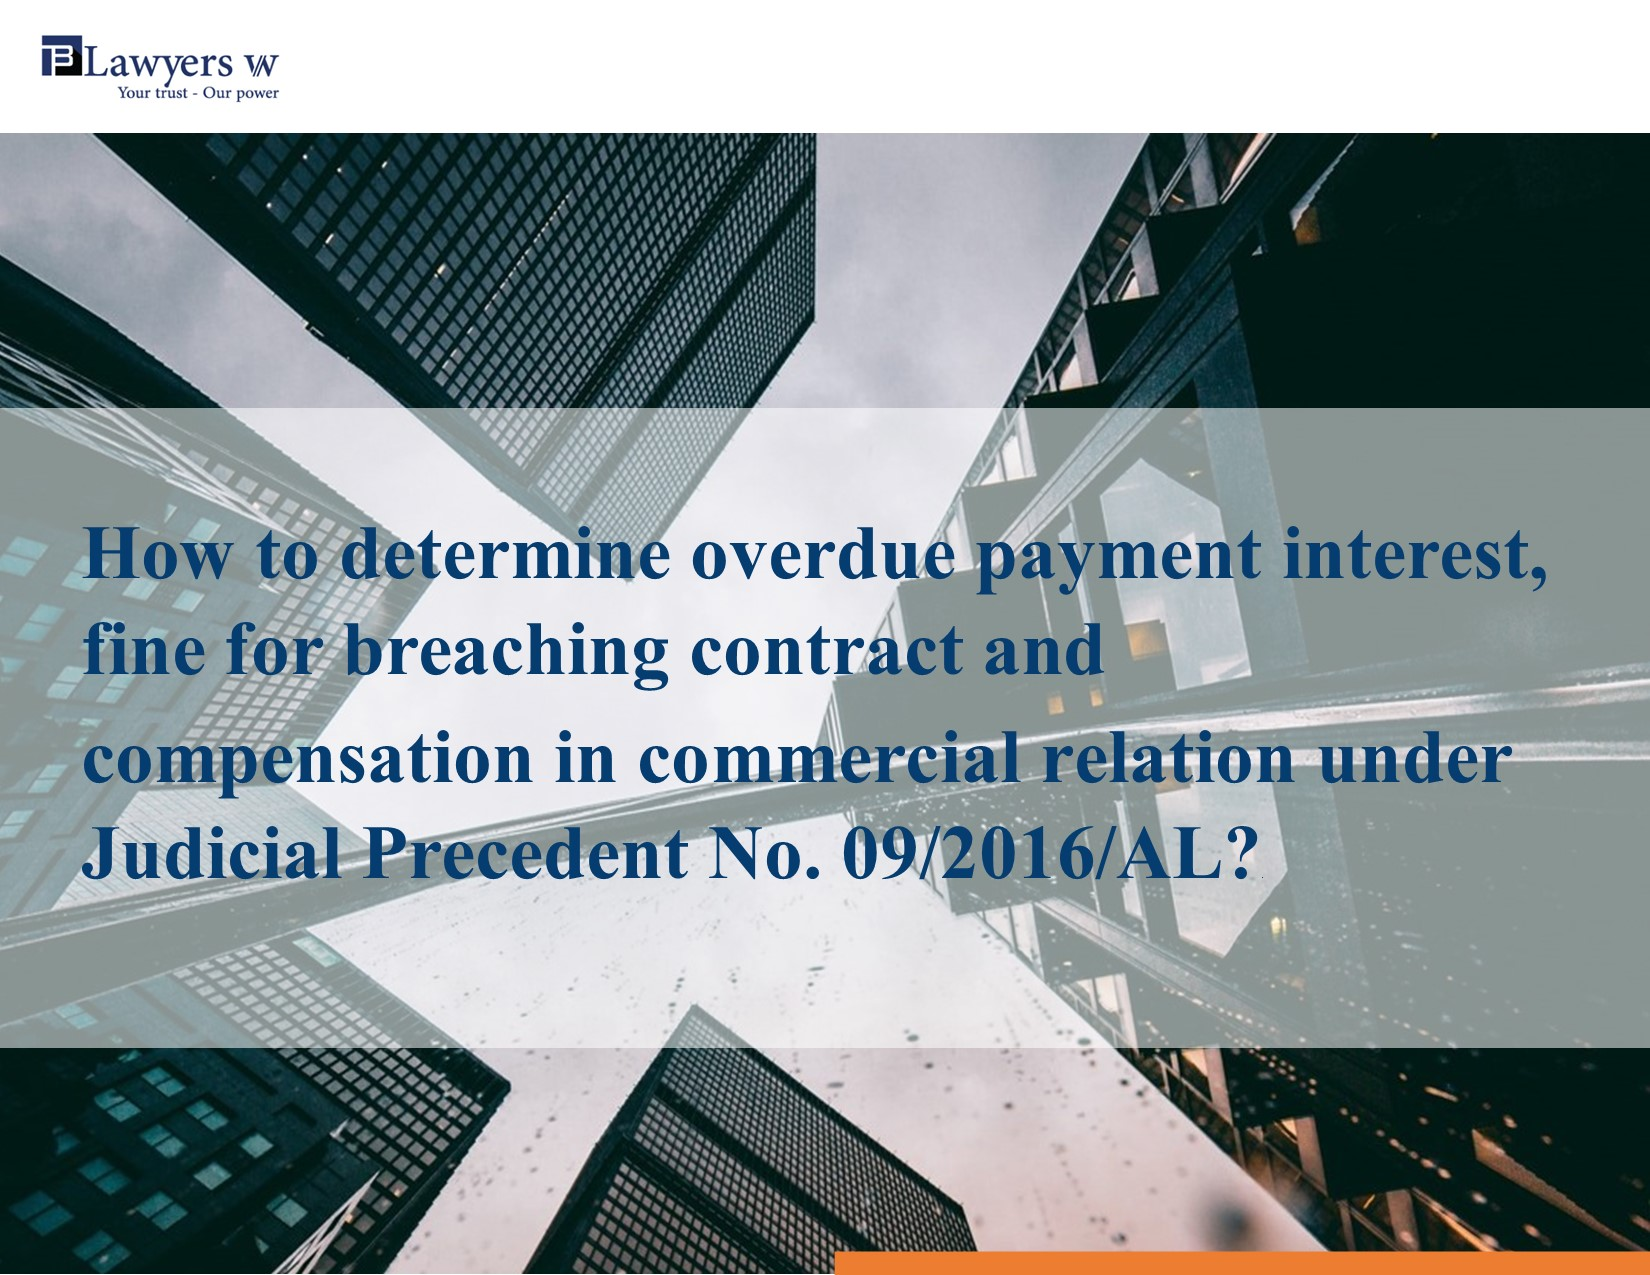 overdue payment interest, fine for breaching contract and compensation in commercial contract